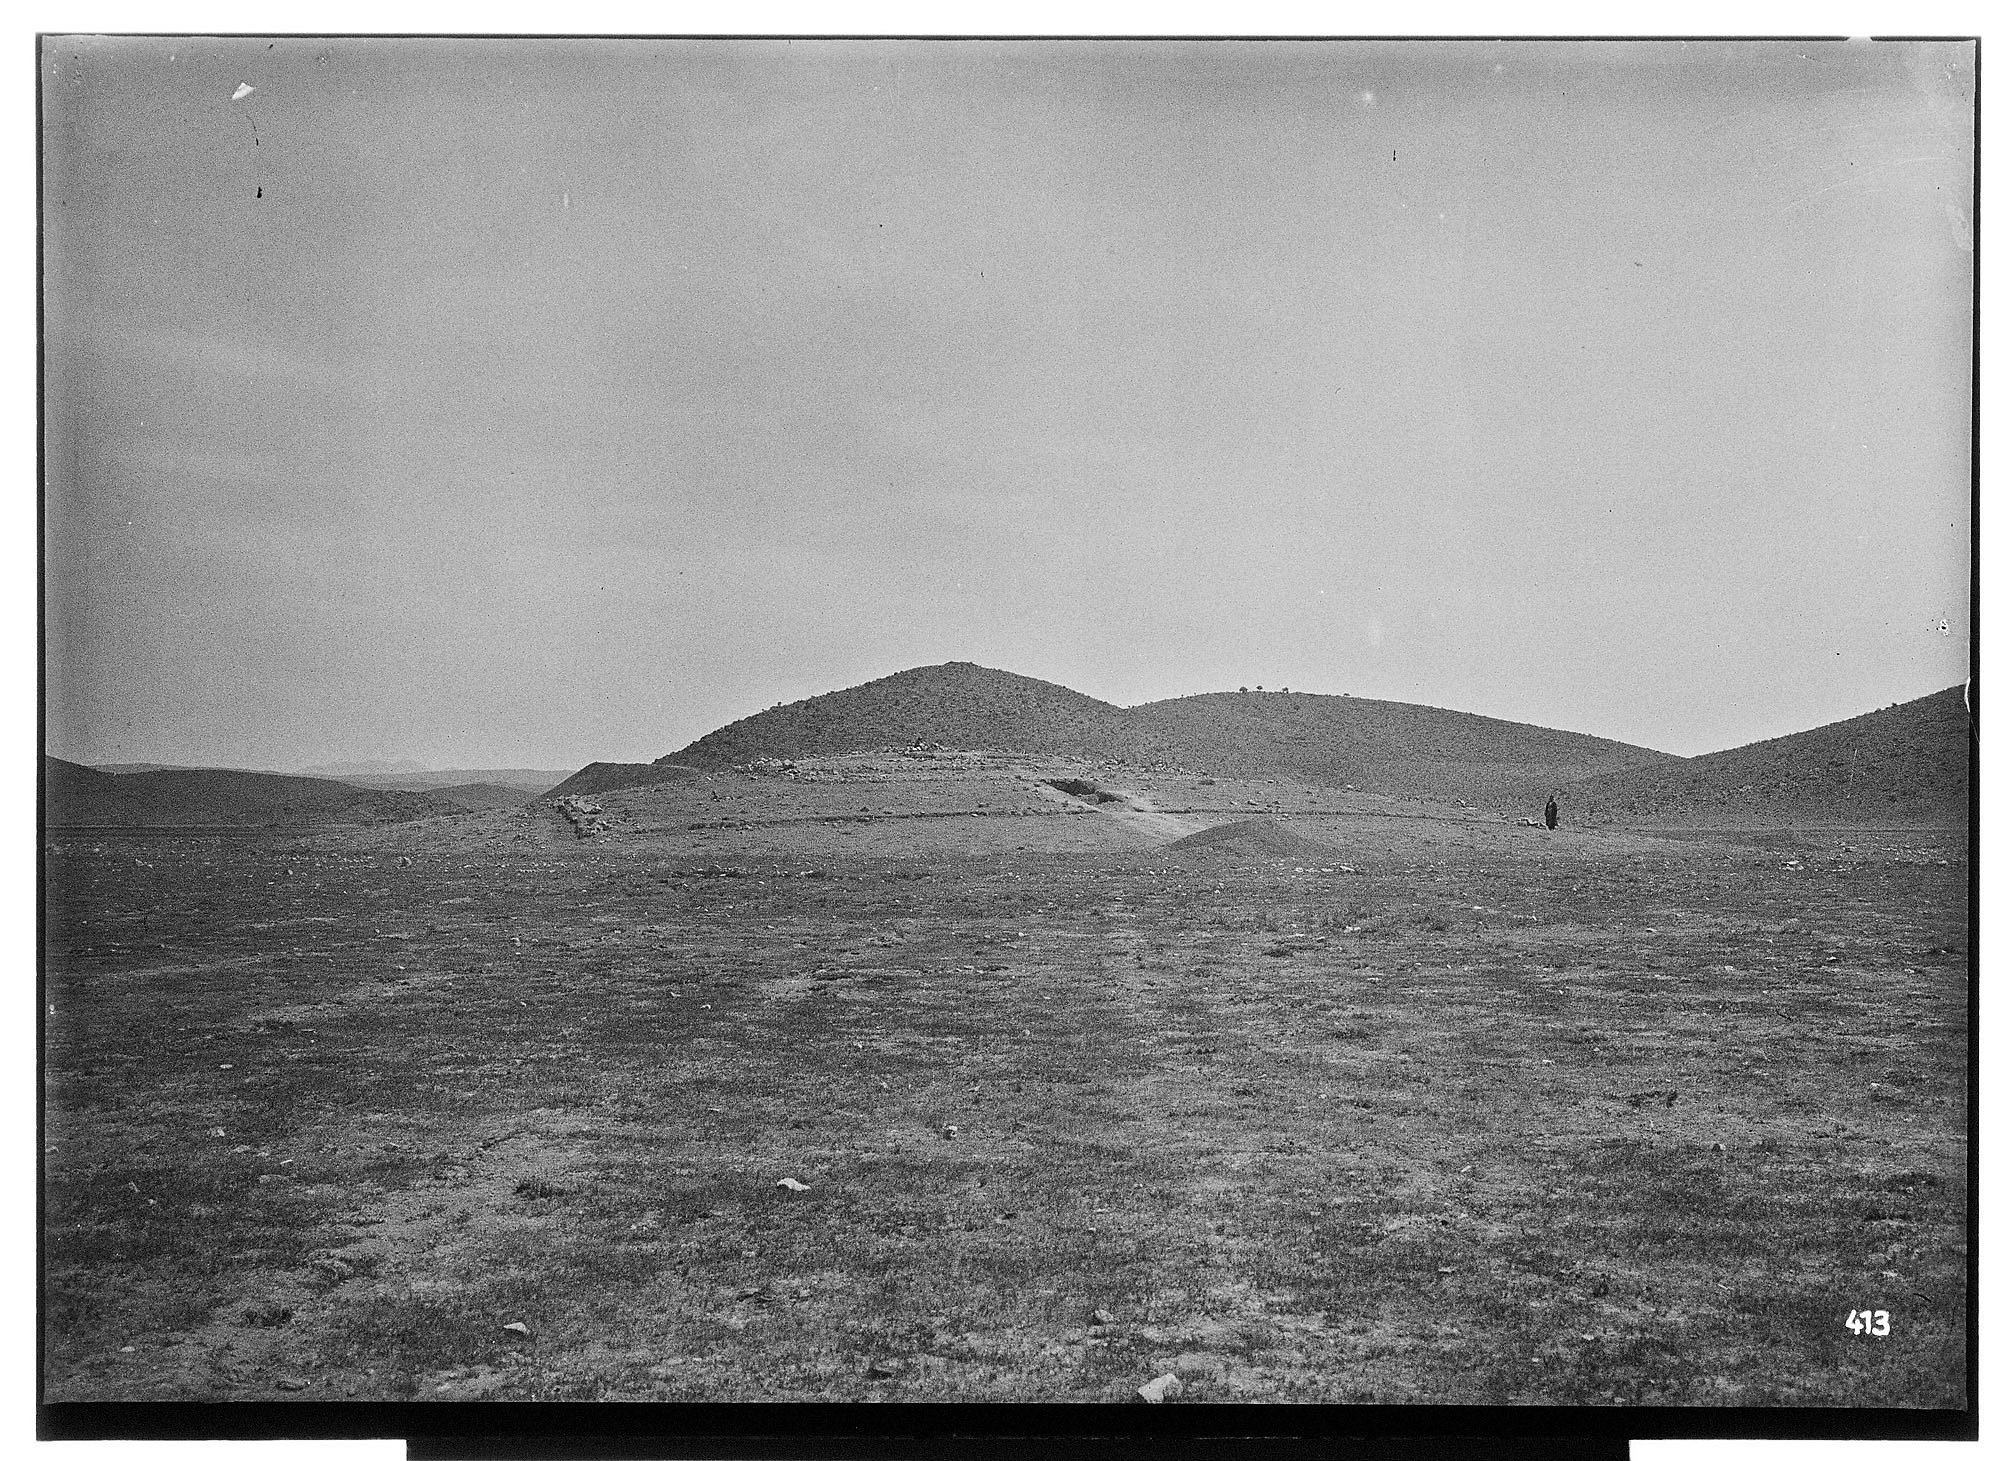 Excavation of Pasargadae (Iran): View of the Valley with Archaeological Sites